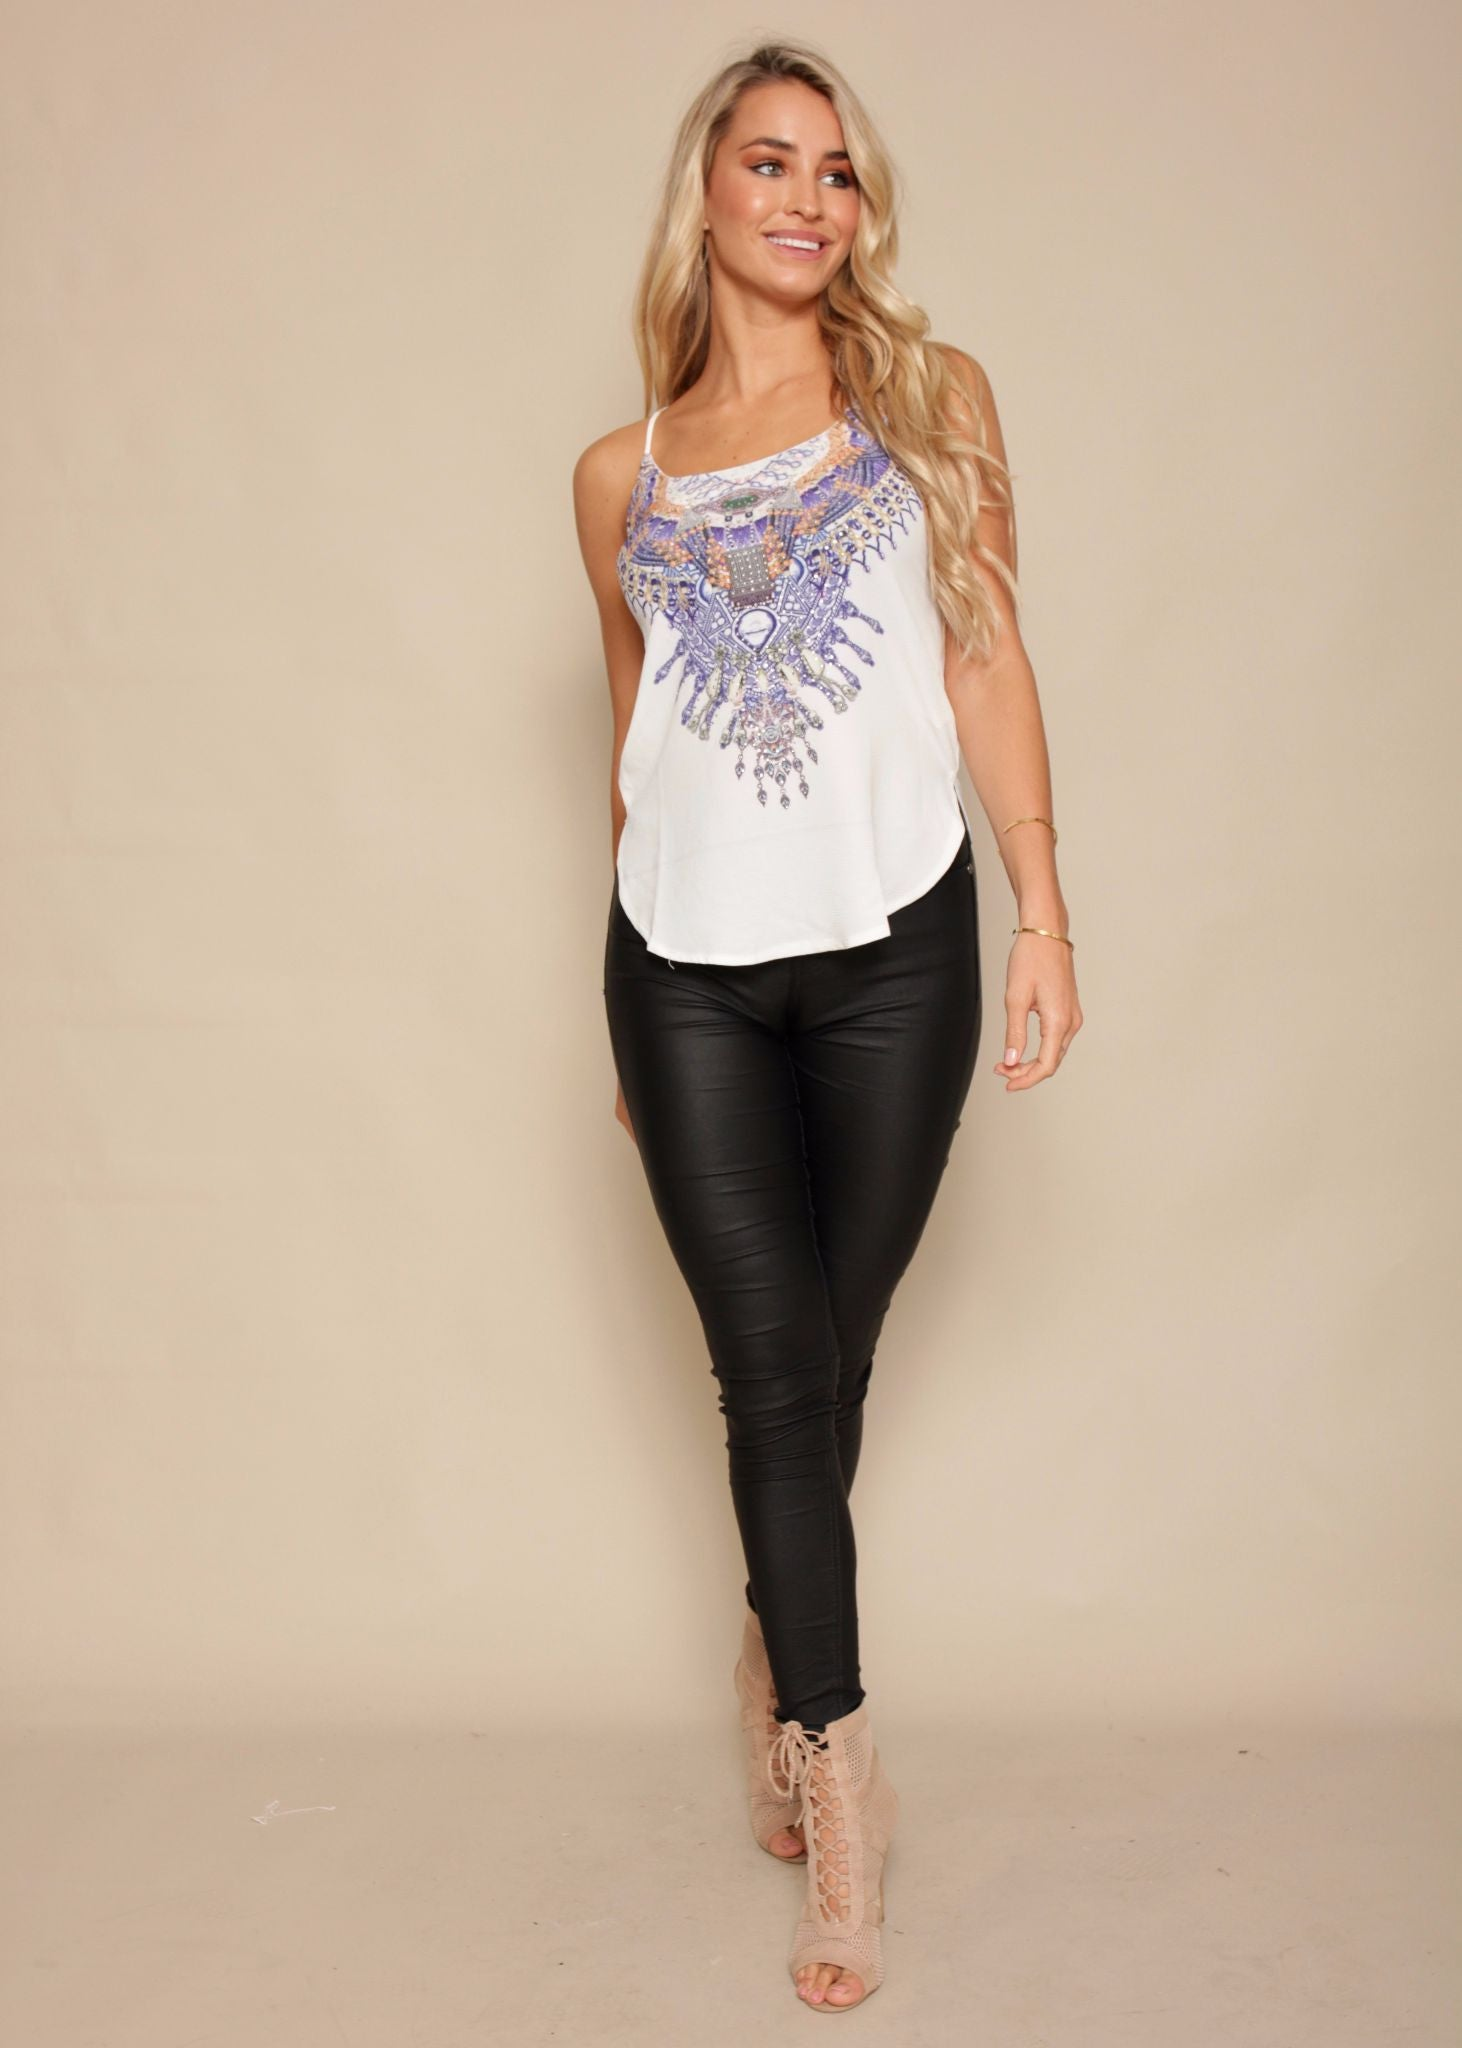 Sunset Glow Cami - Indigo Jewels